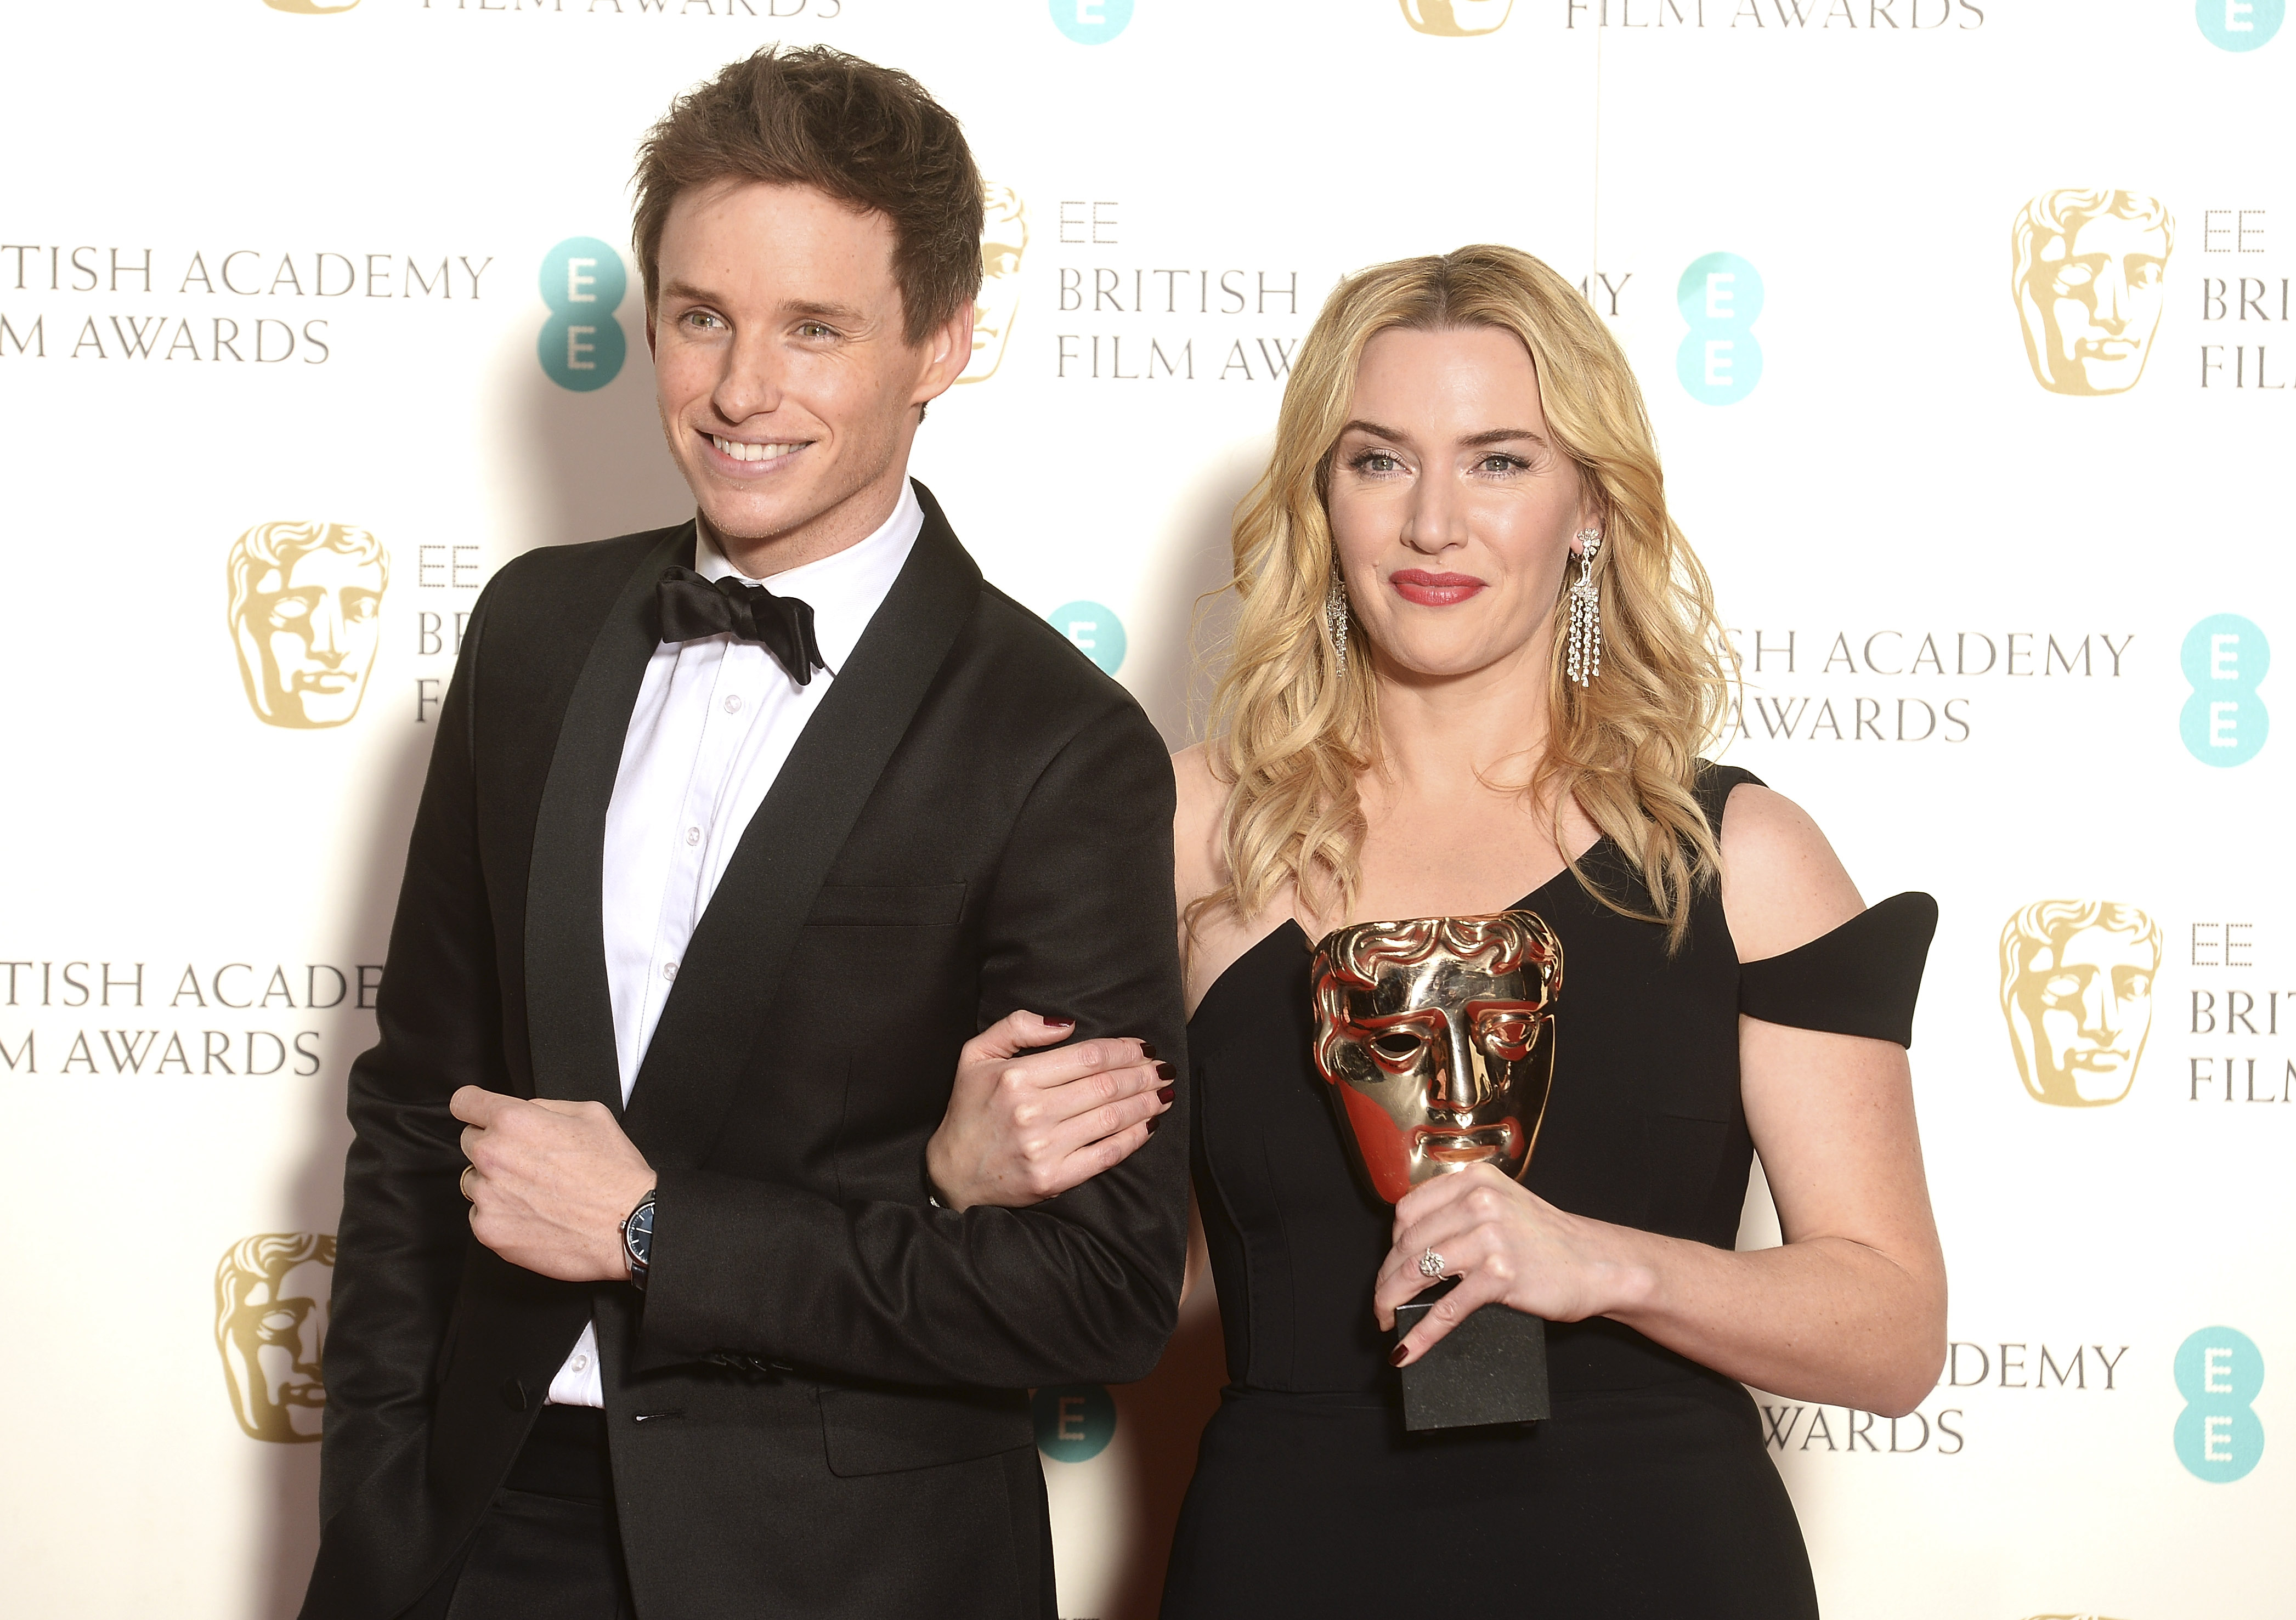 Eddie Redmayne posa ao lado da vencedora de Atriz Coadjuvante Kate Winslet (Photo by Dave J Hogan/Dave J Hogan/Getty Images)